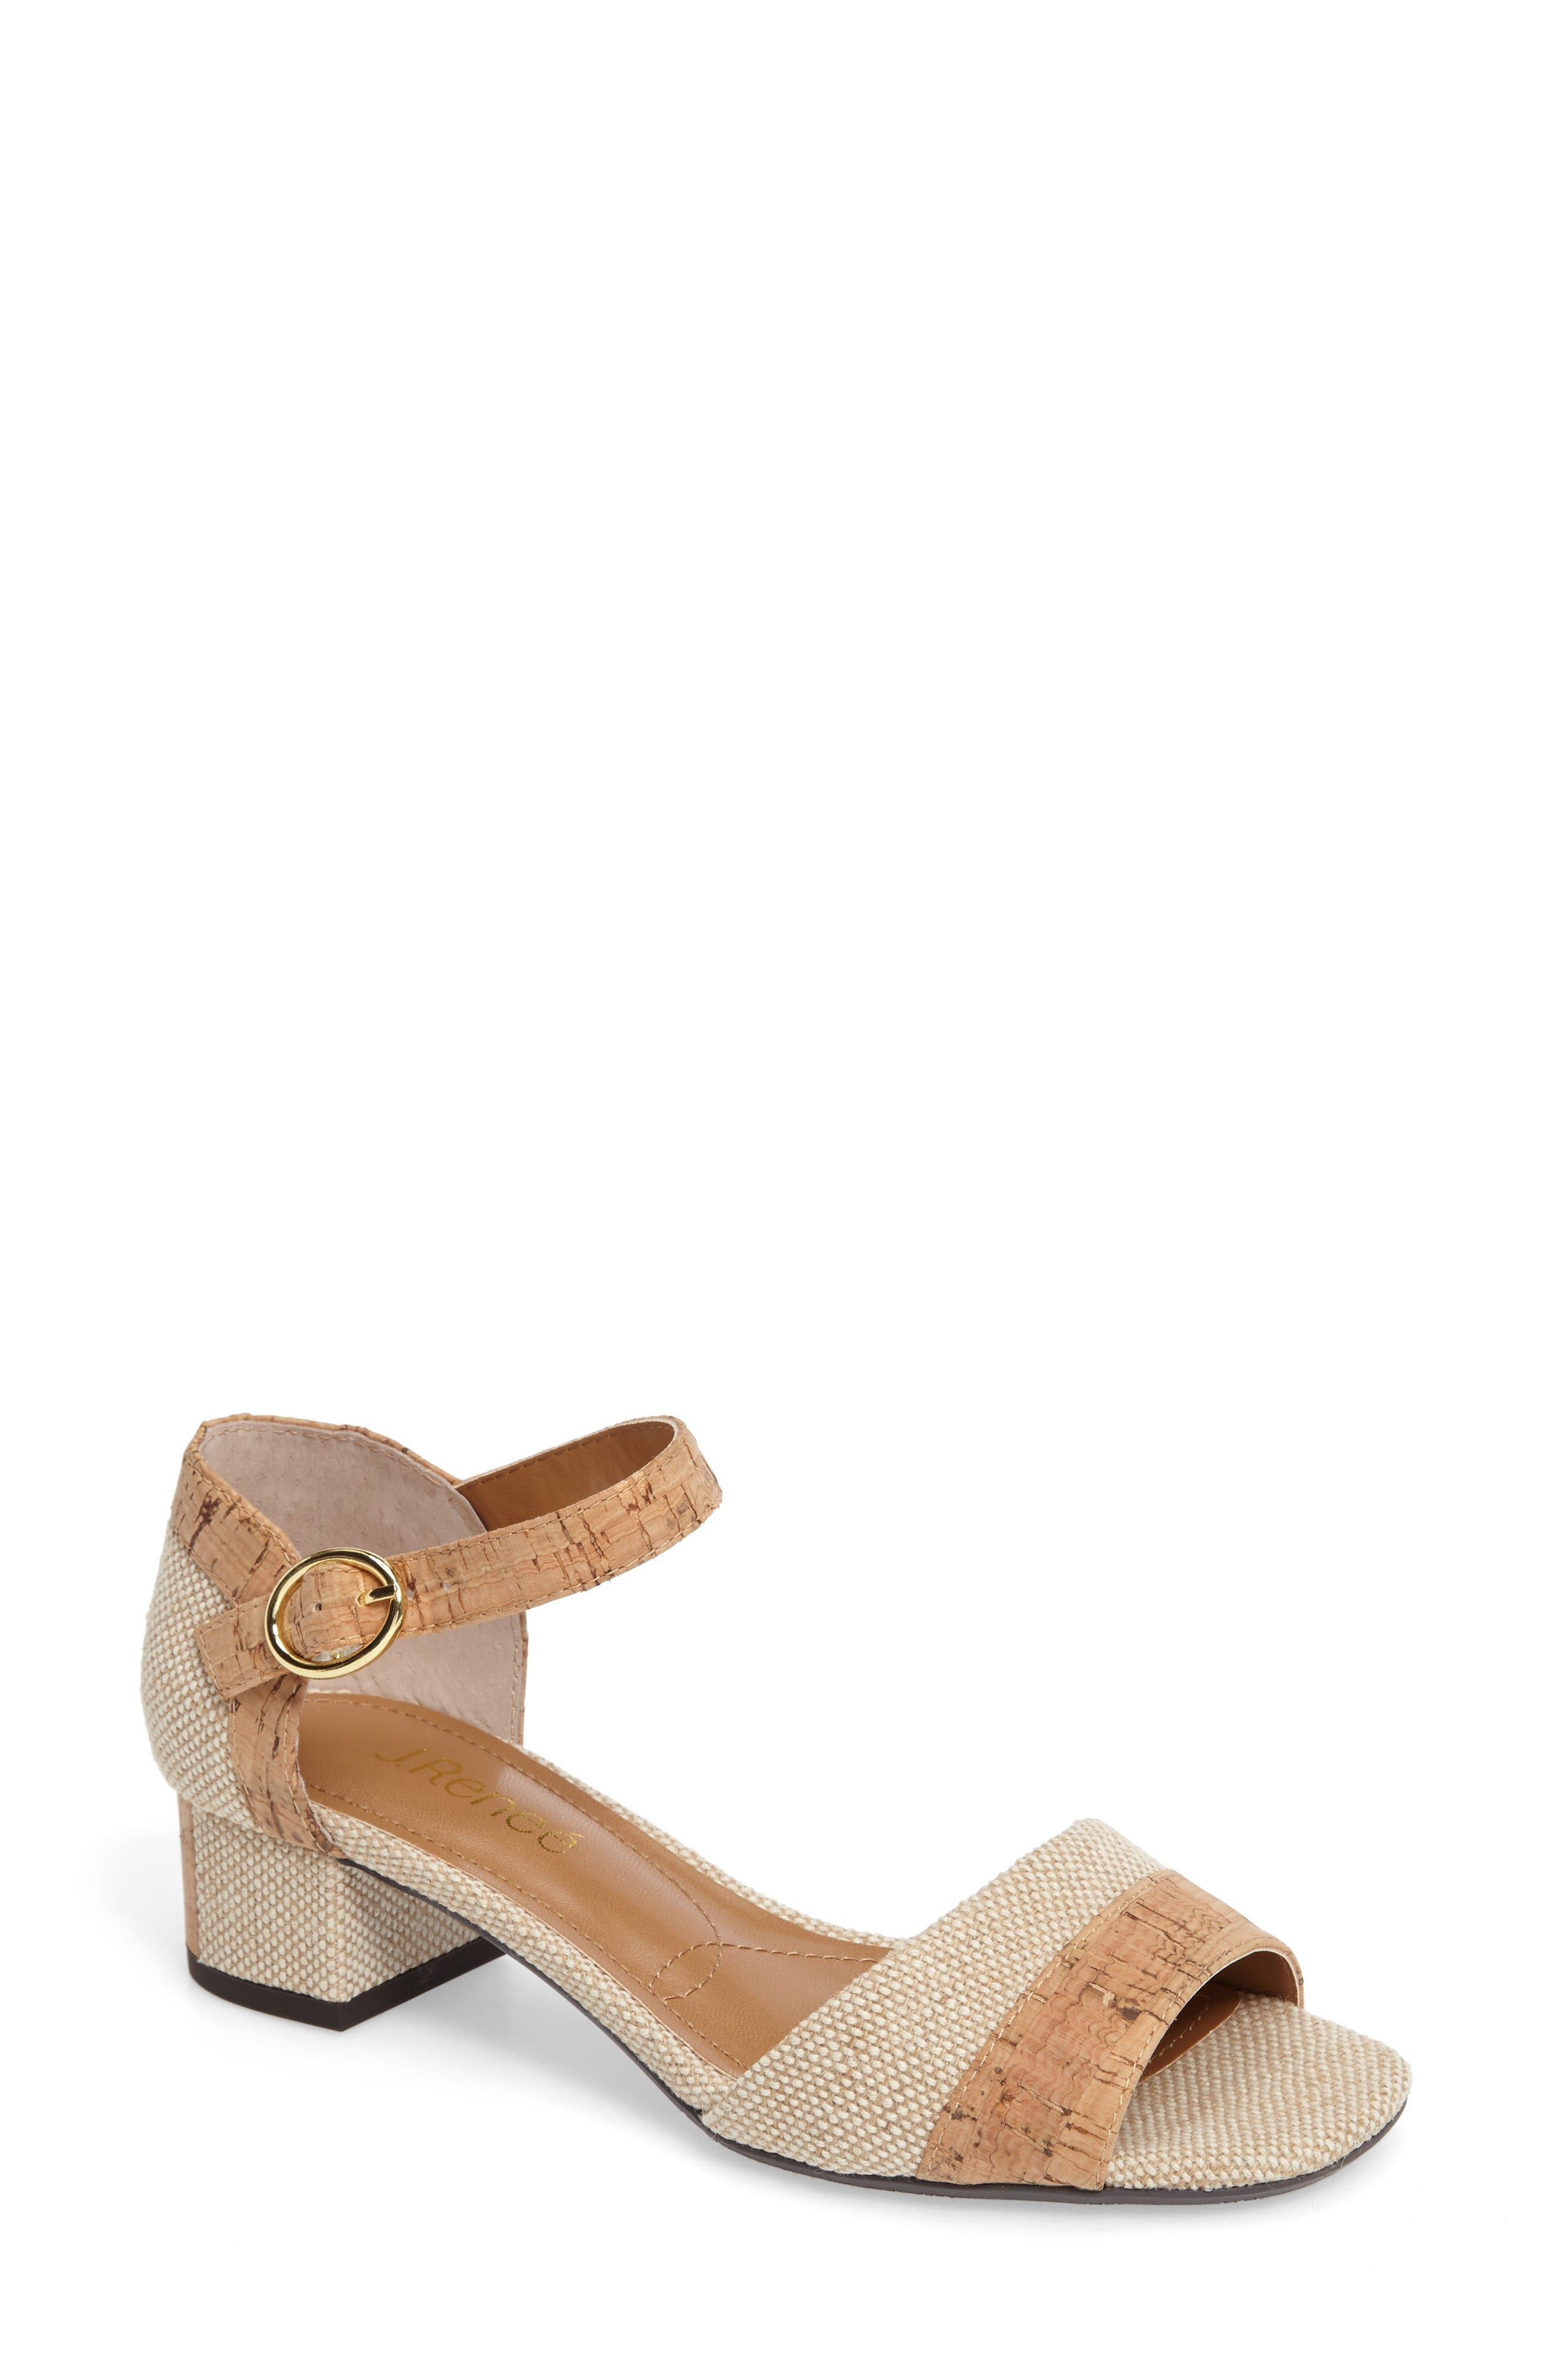 J. Reneé Pebblebeach Block Heel Sandal (Women)